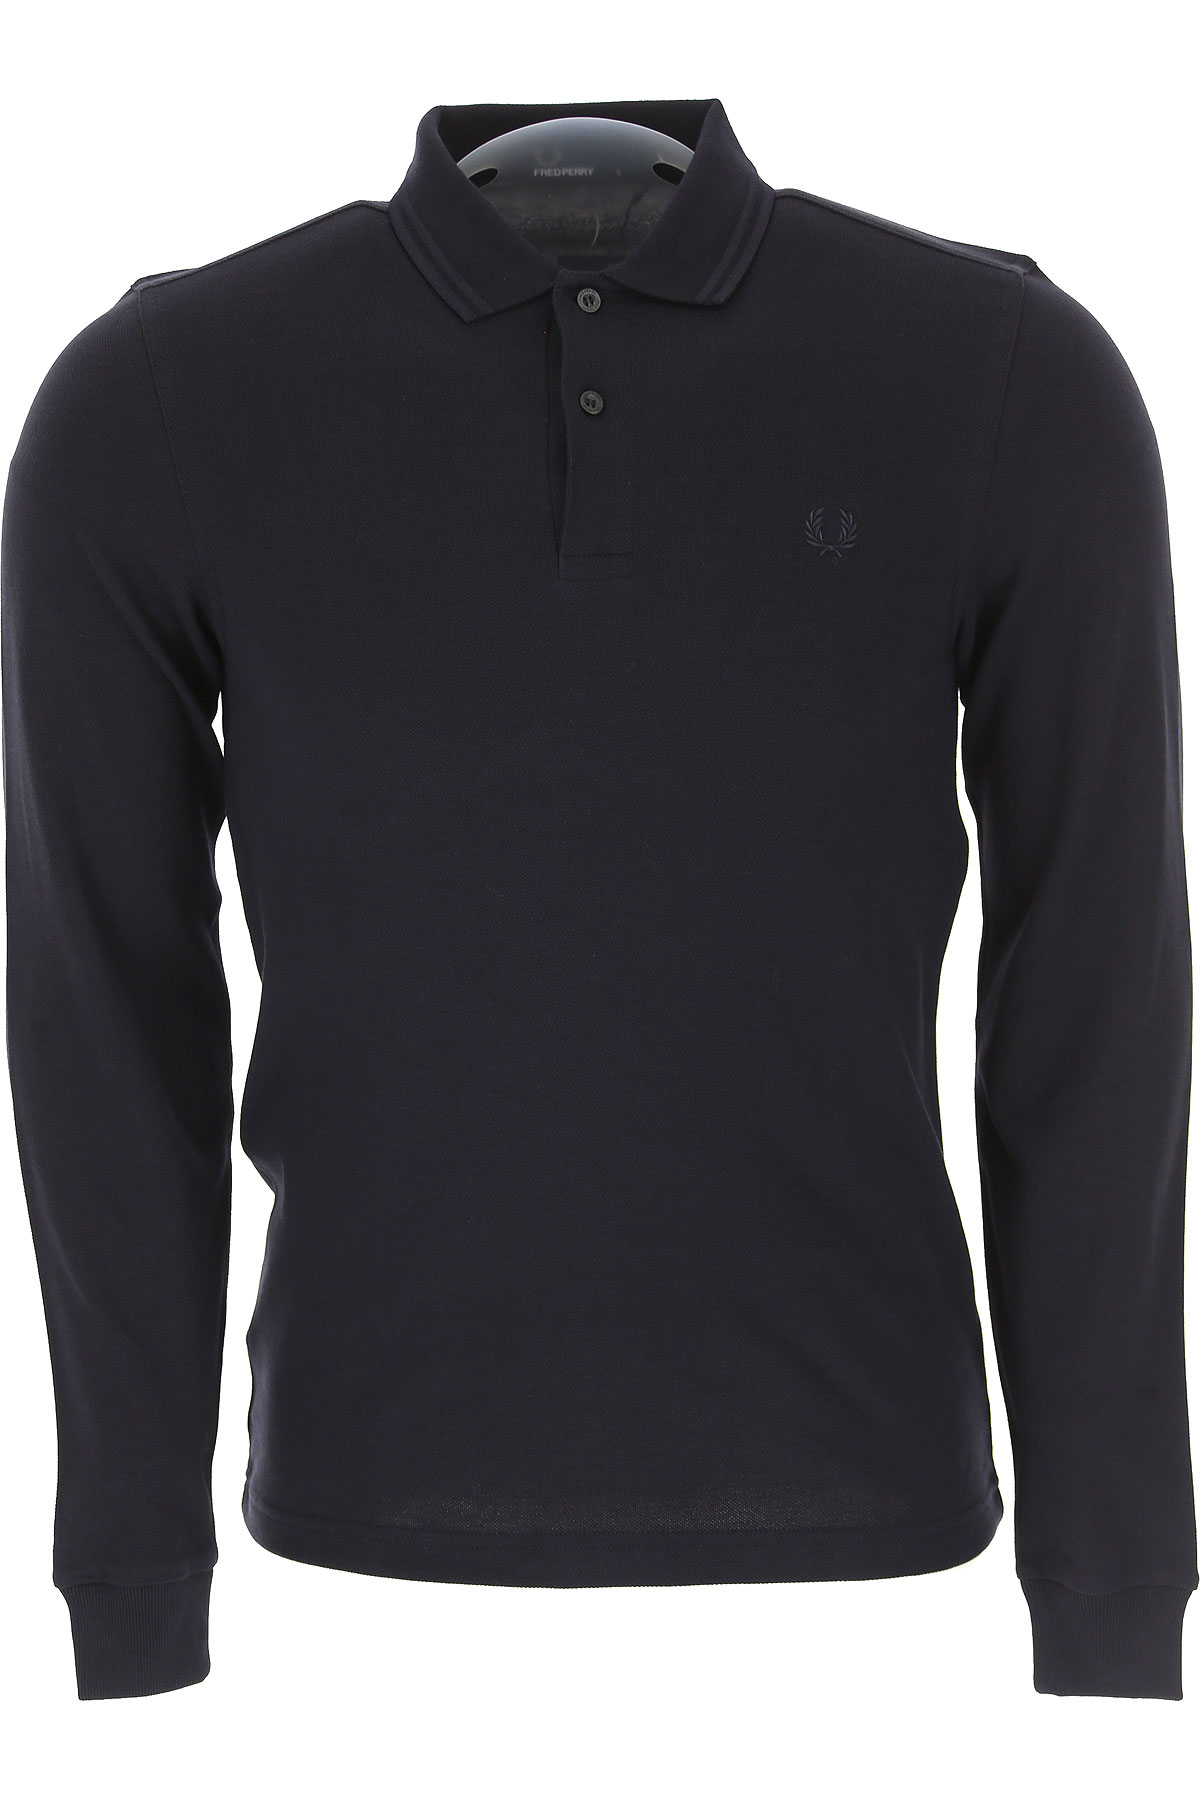 Image of Fred Perry Polo Shirt for Men, Navy Blue, Cotton, 2017, M S XL